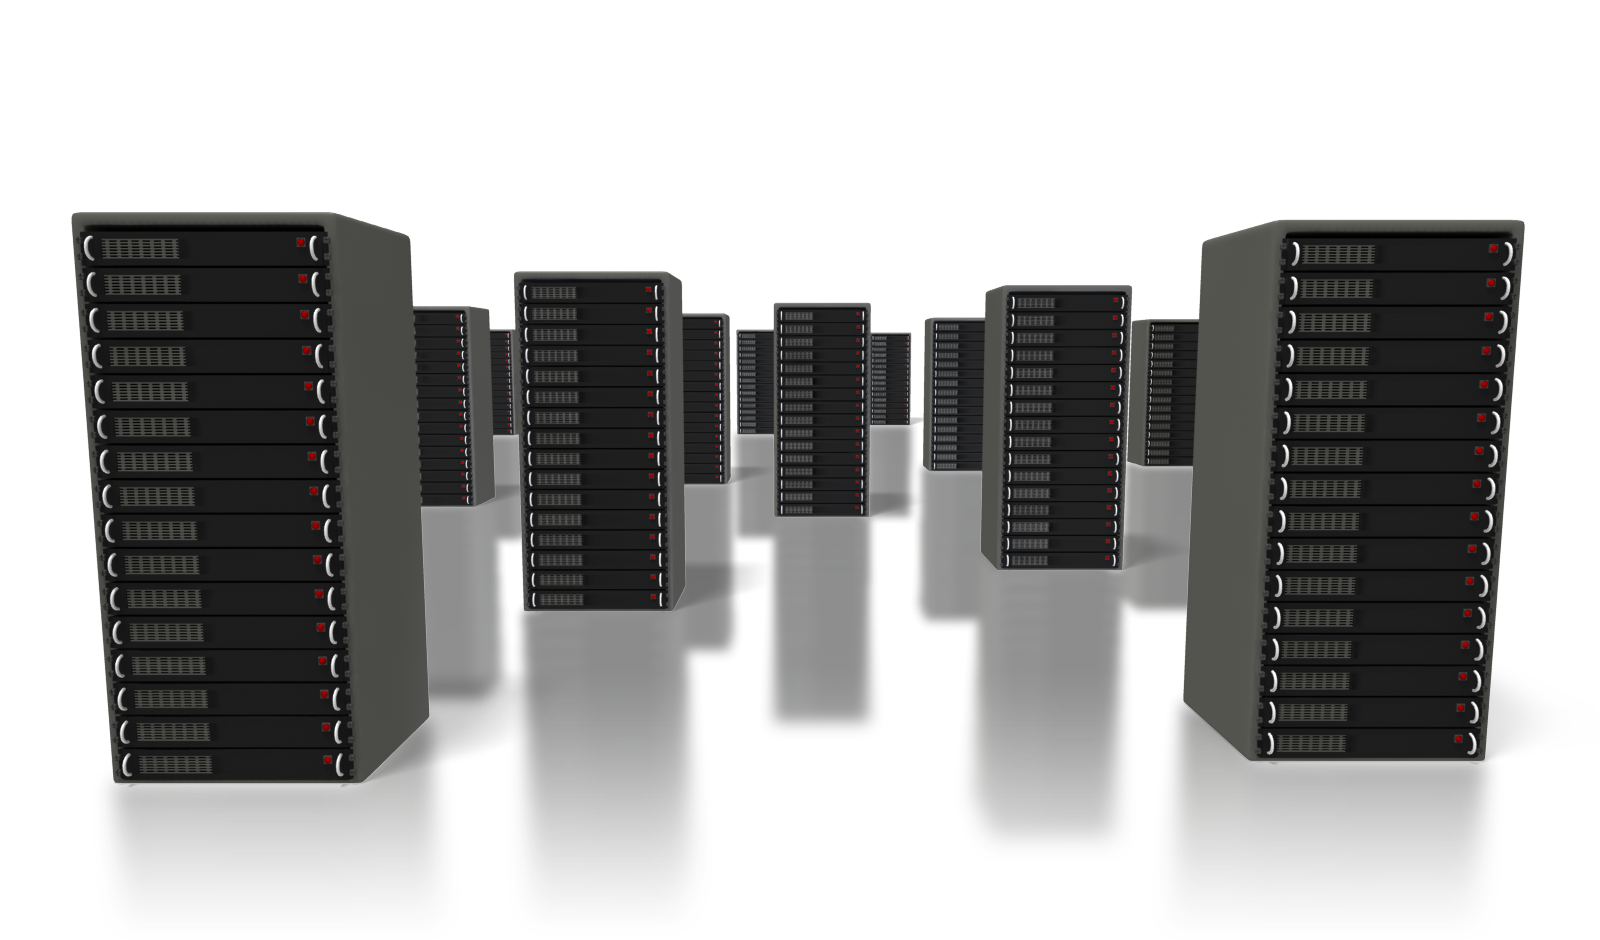 Image Gallery of Data Center Clip Art.